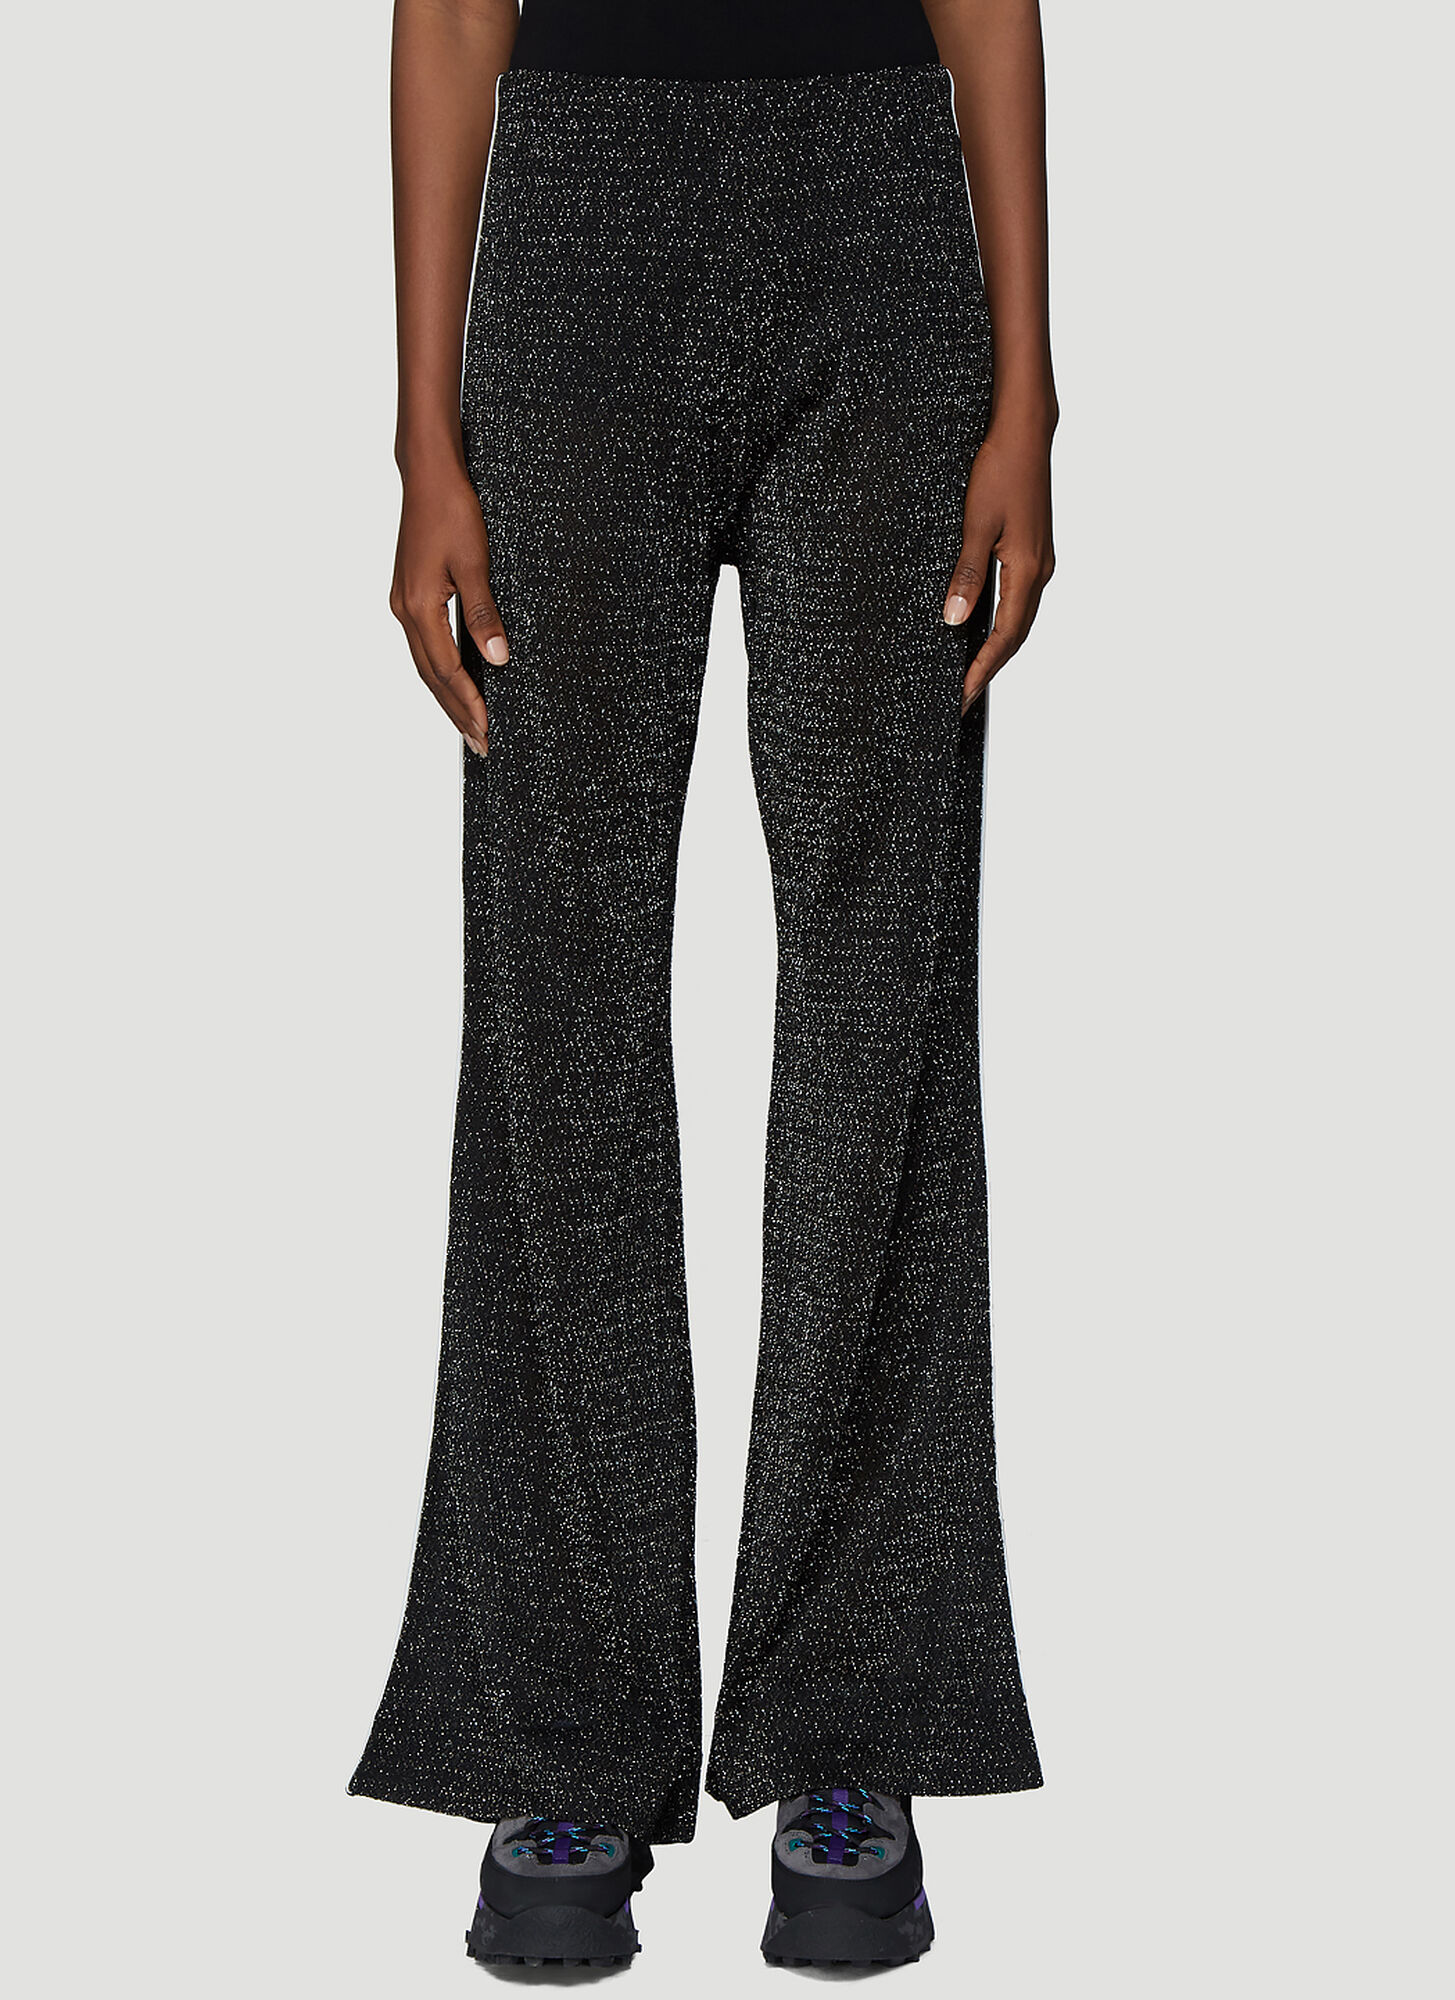 Acne Studios Lurex Flared Pants in Black